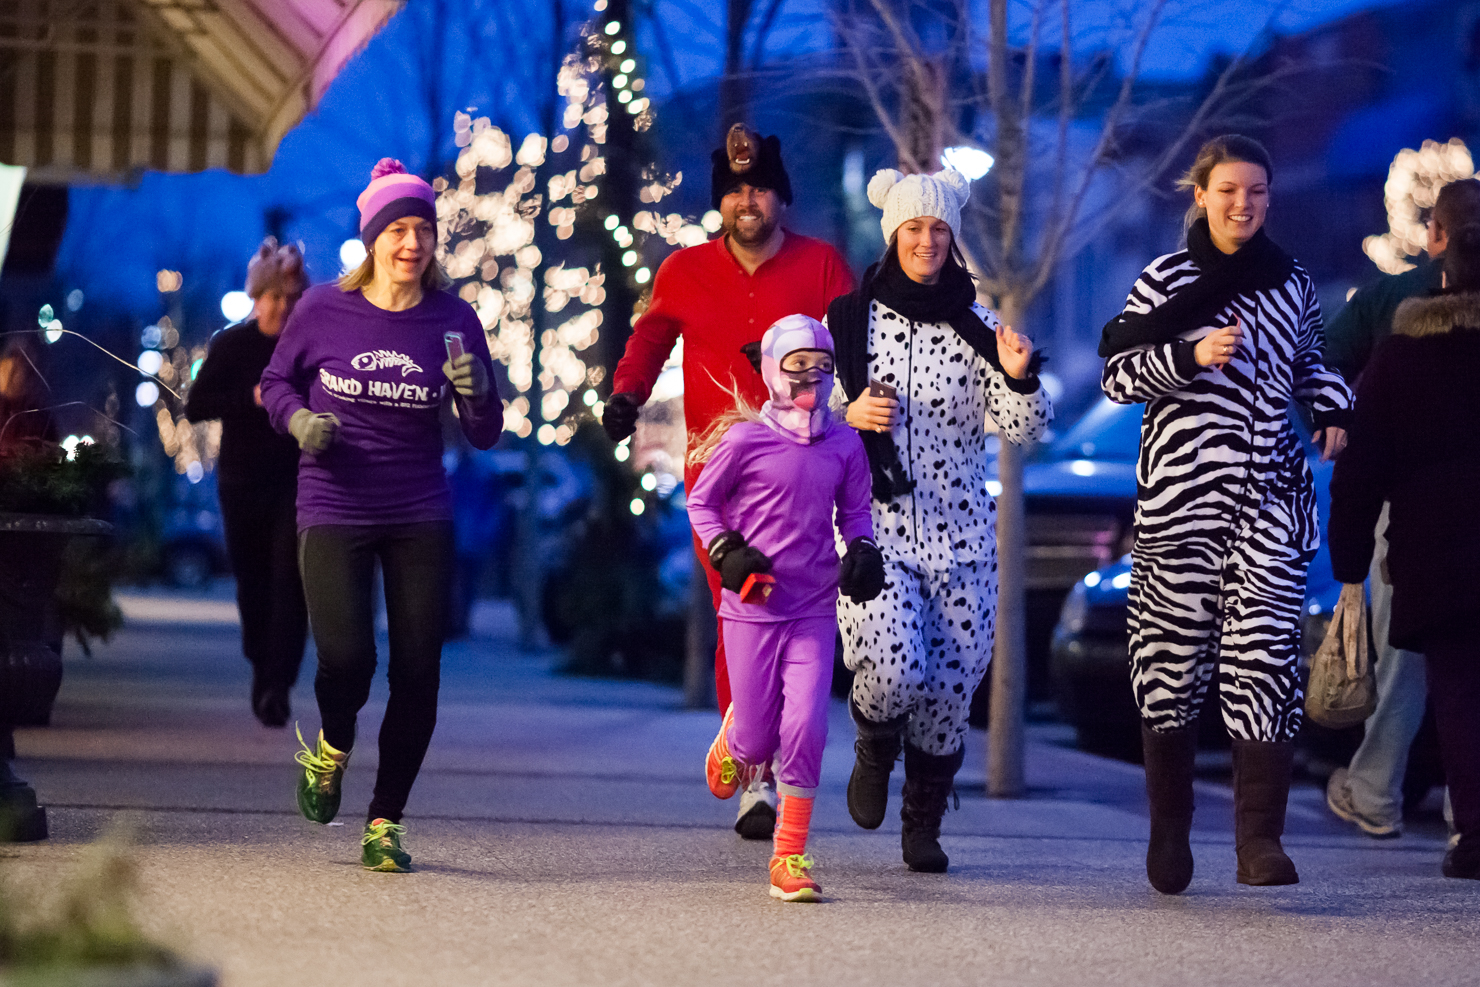 Grand Haven Winterfest Sleepwalker Run - Photo: Randy Riksen Photography